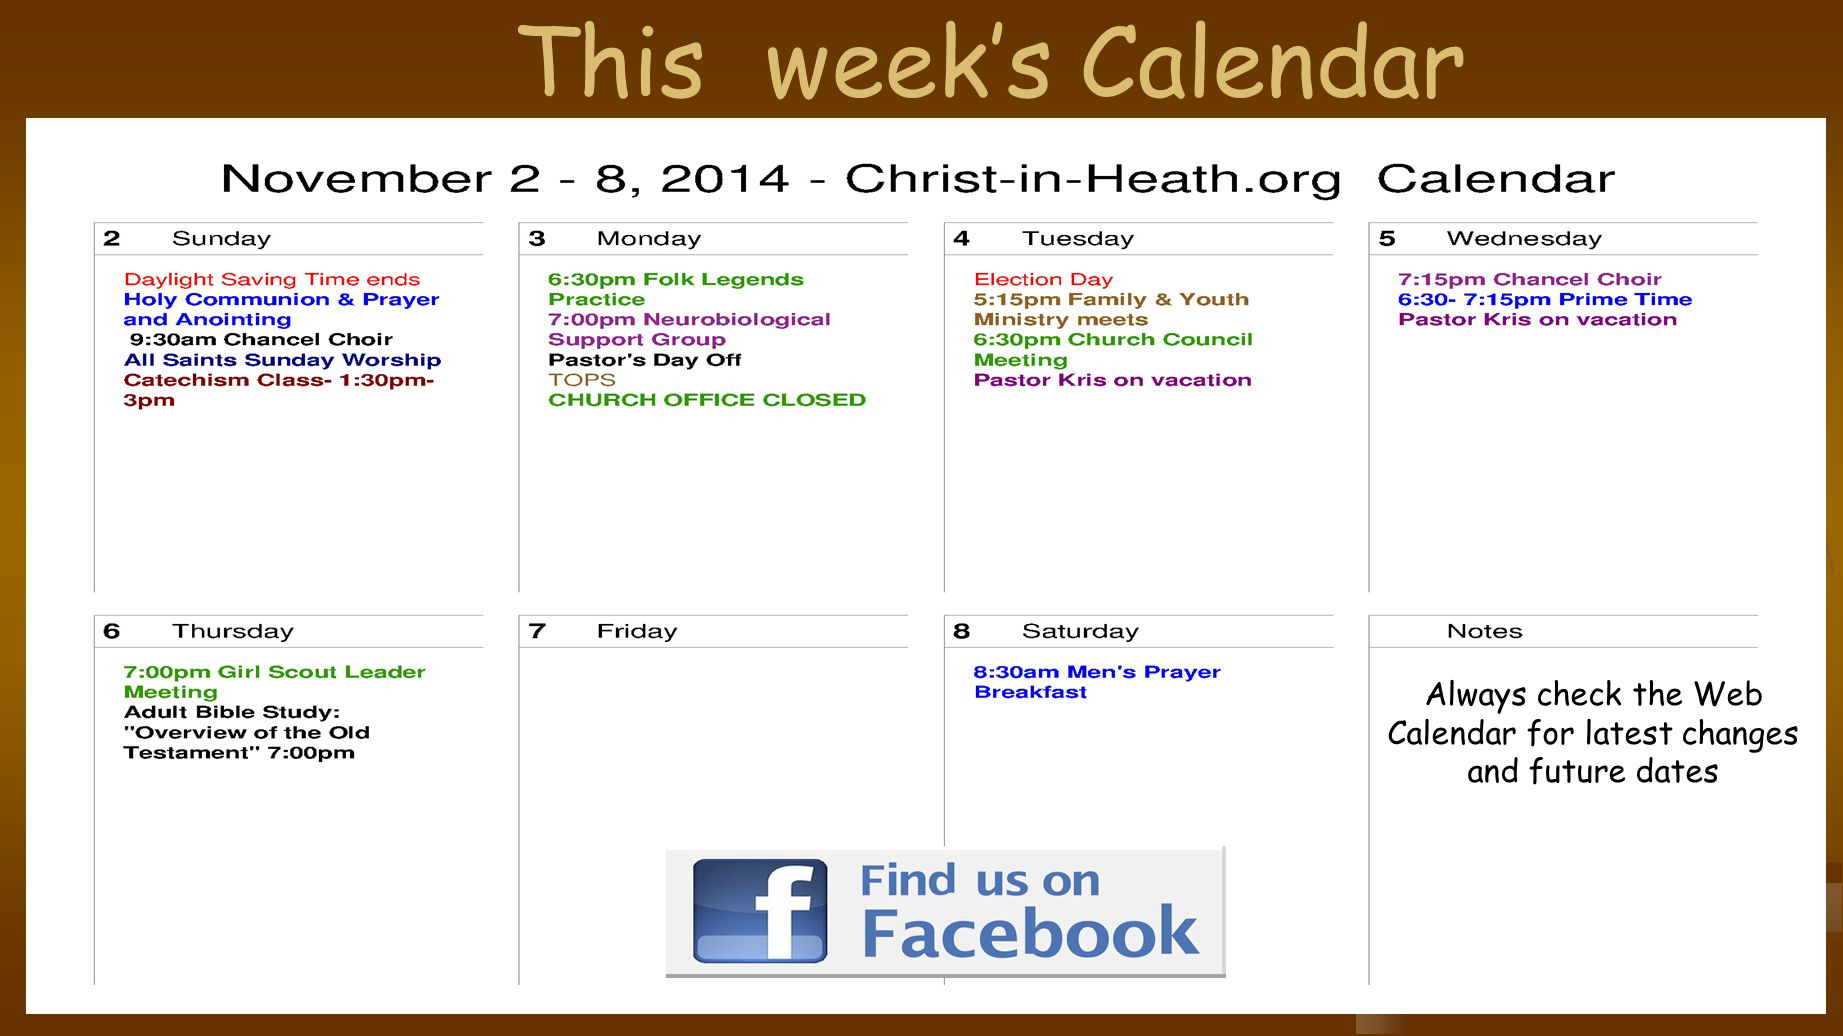 This week's Calendar Always check the Web Calendar for latest changes and future dates